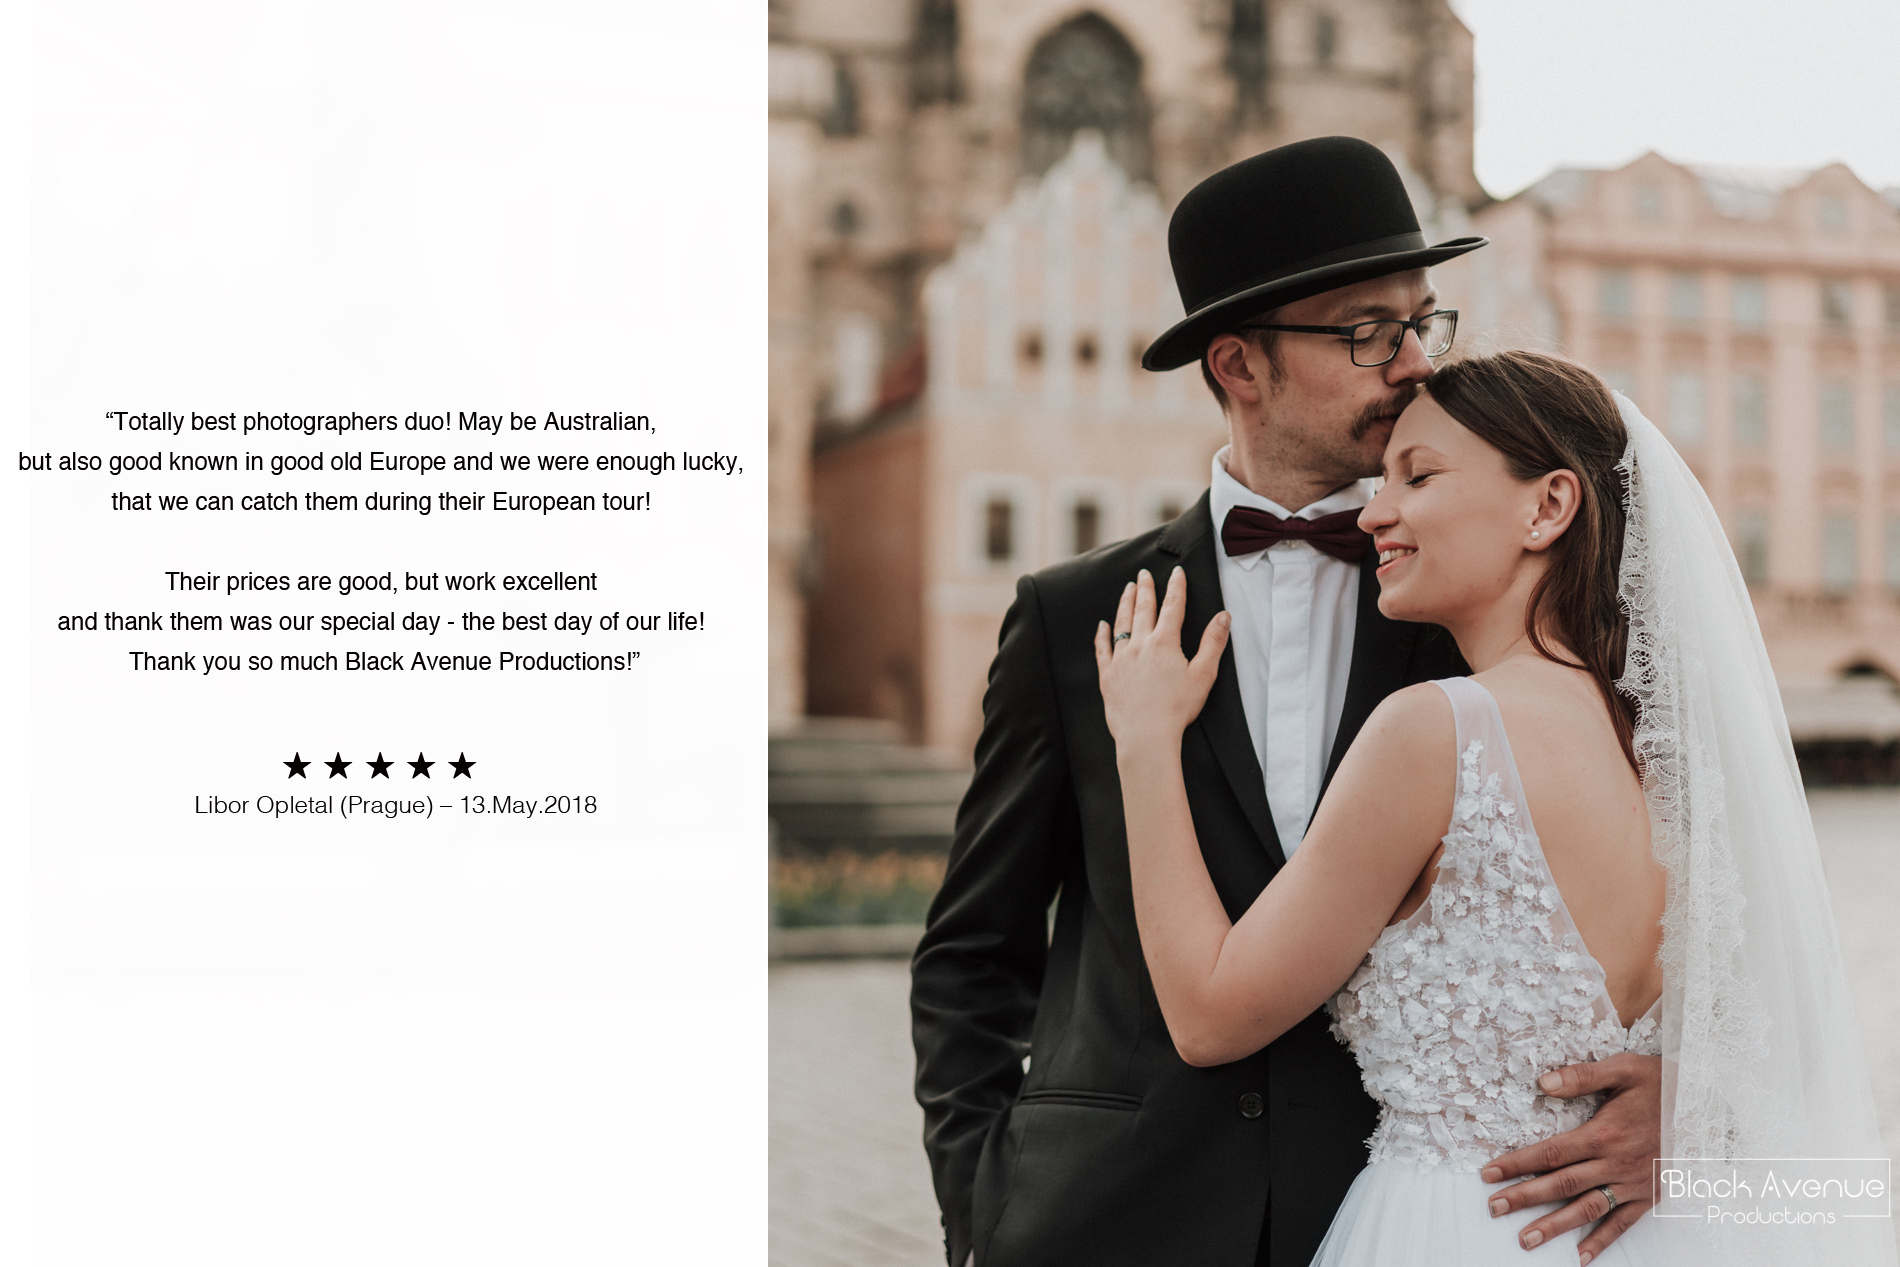 Prague wedding photography 5 stars review at Prague Old Town Square